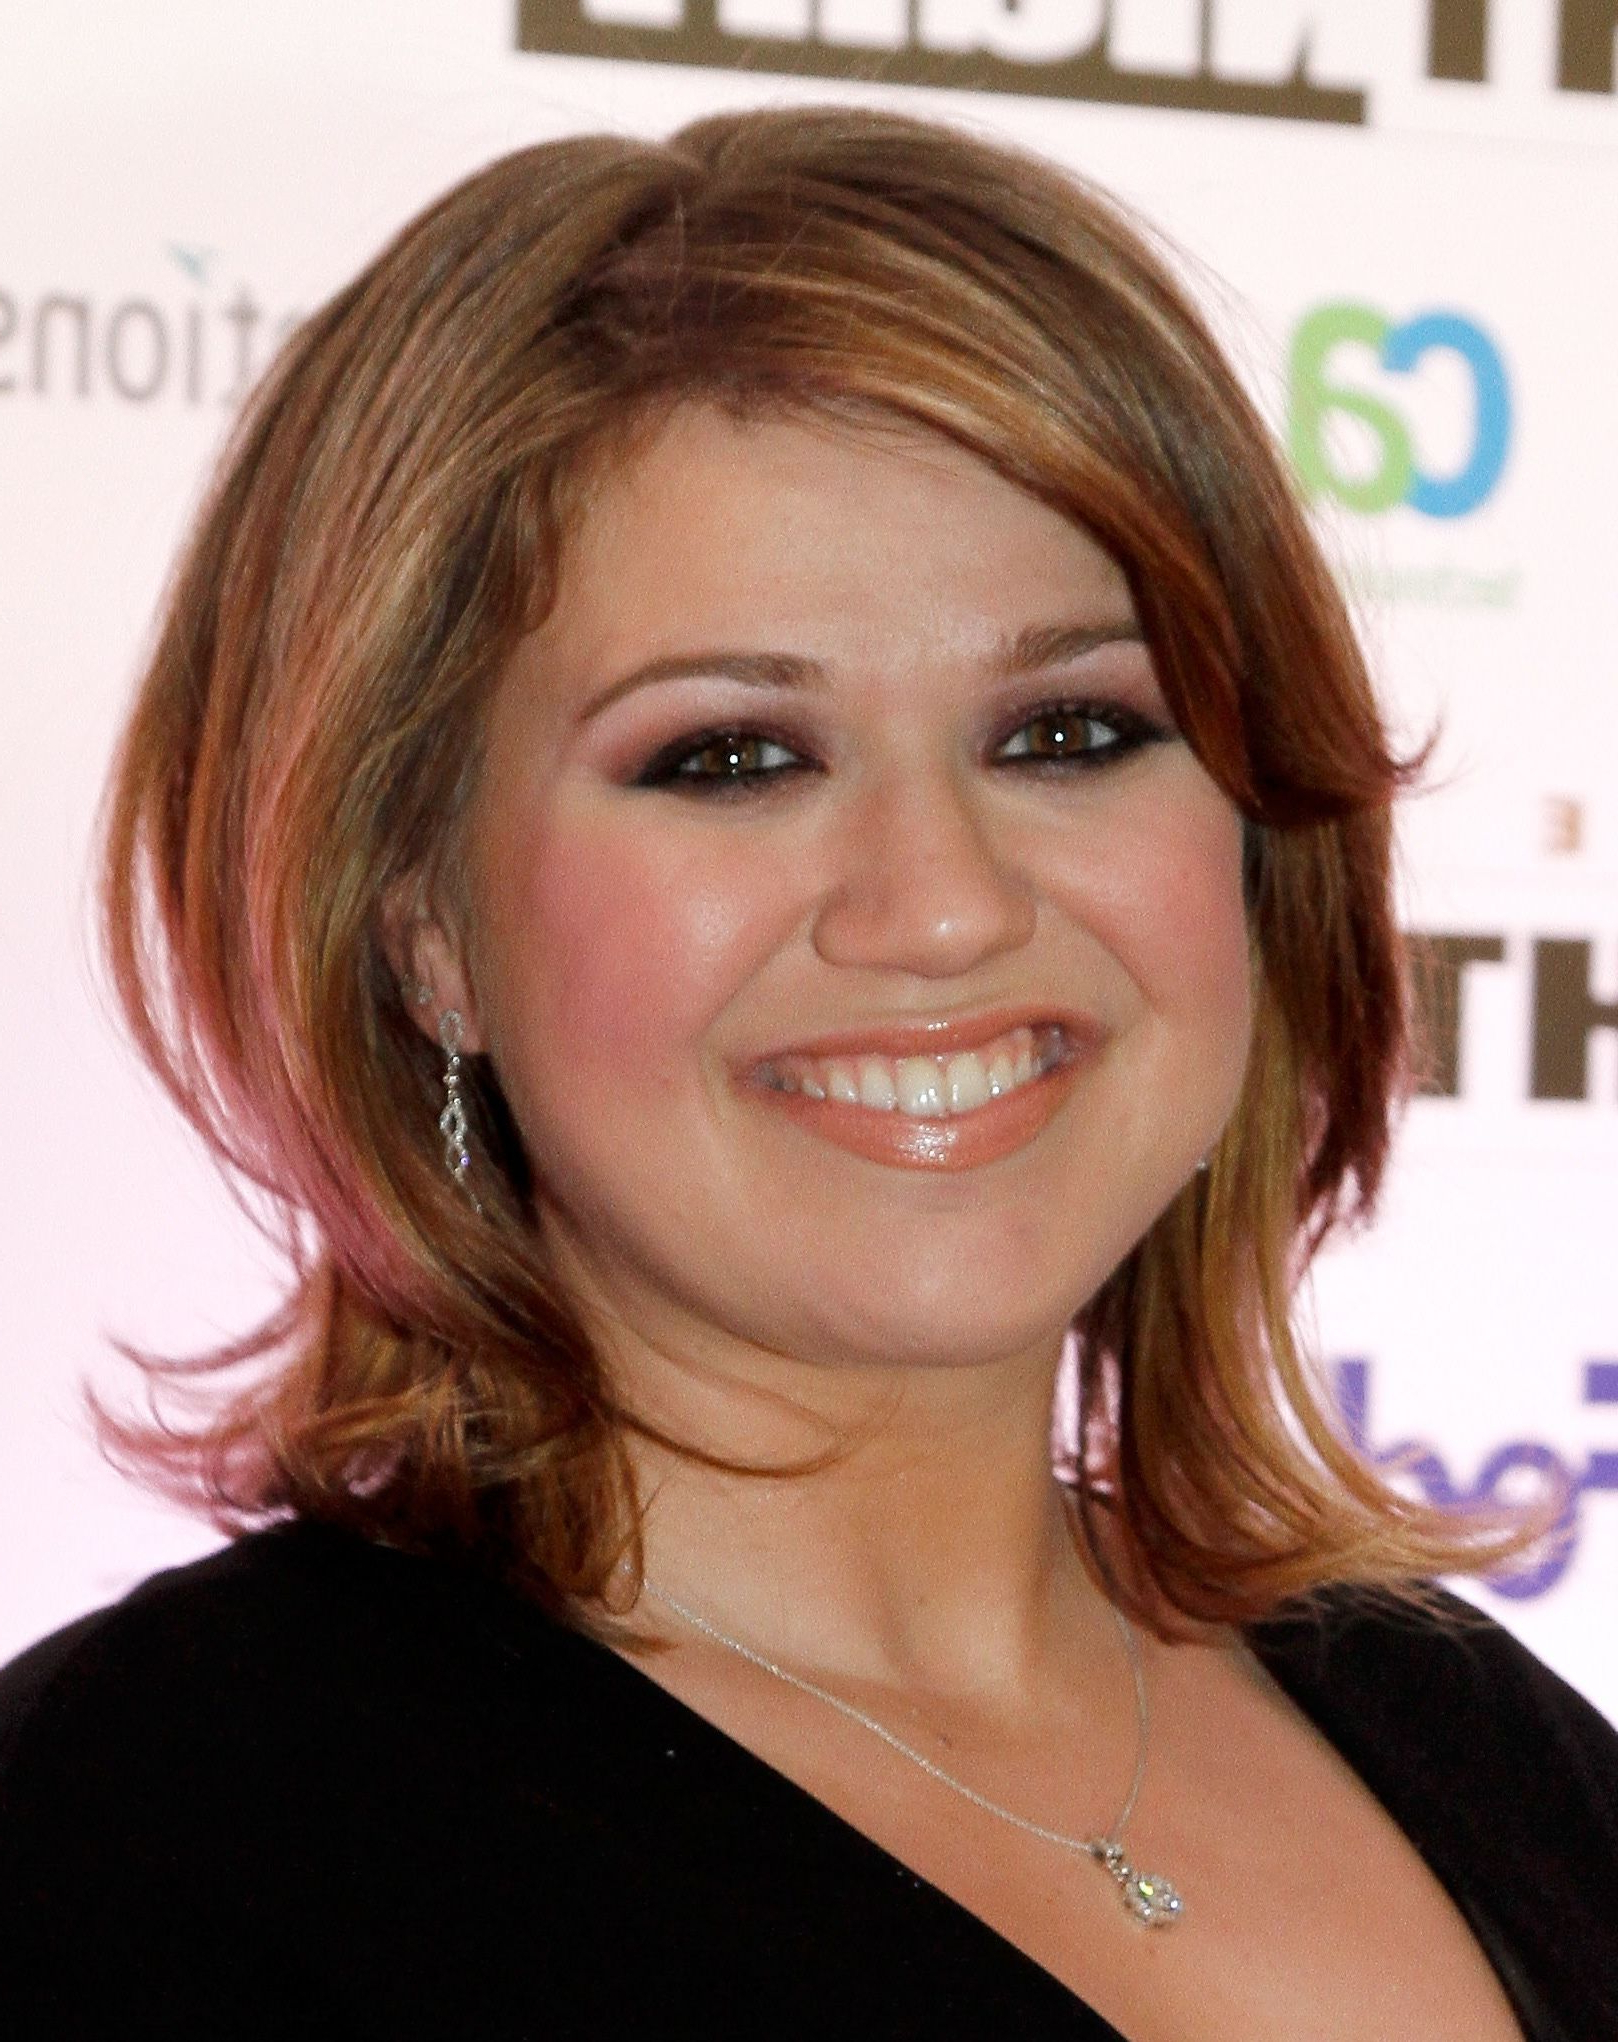 Flattering Celebrity Hairstyles For Round Faces | Celebrity In Kelly Clarkson Short Haircut (View 10 of 25)